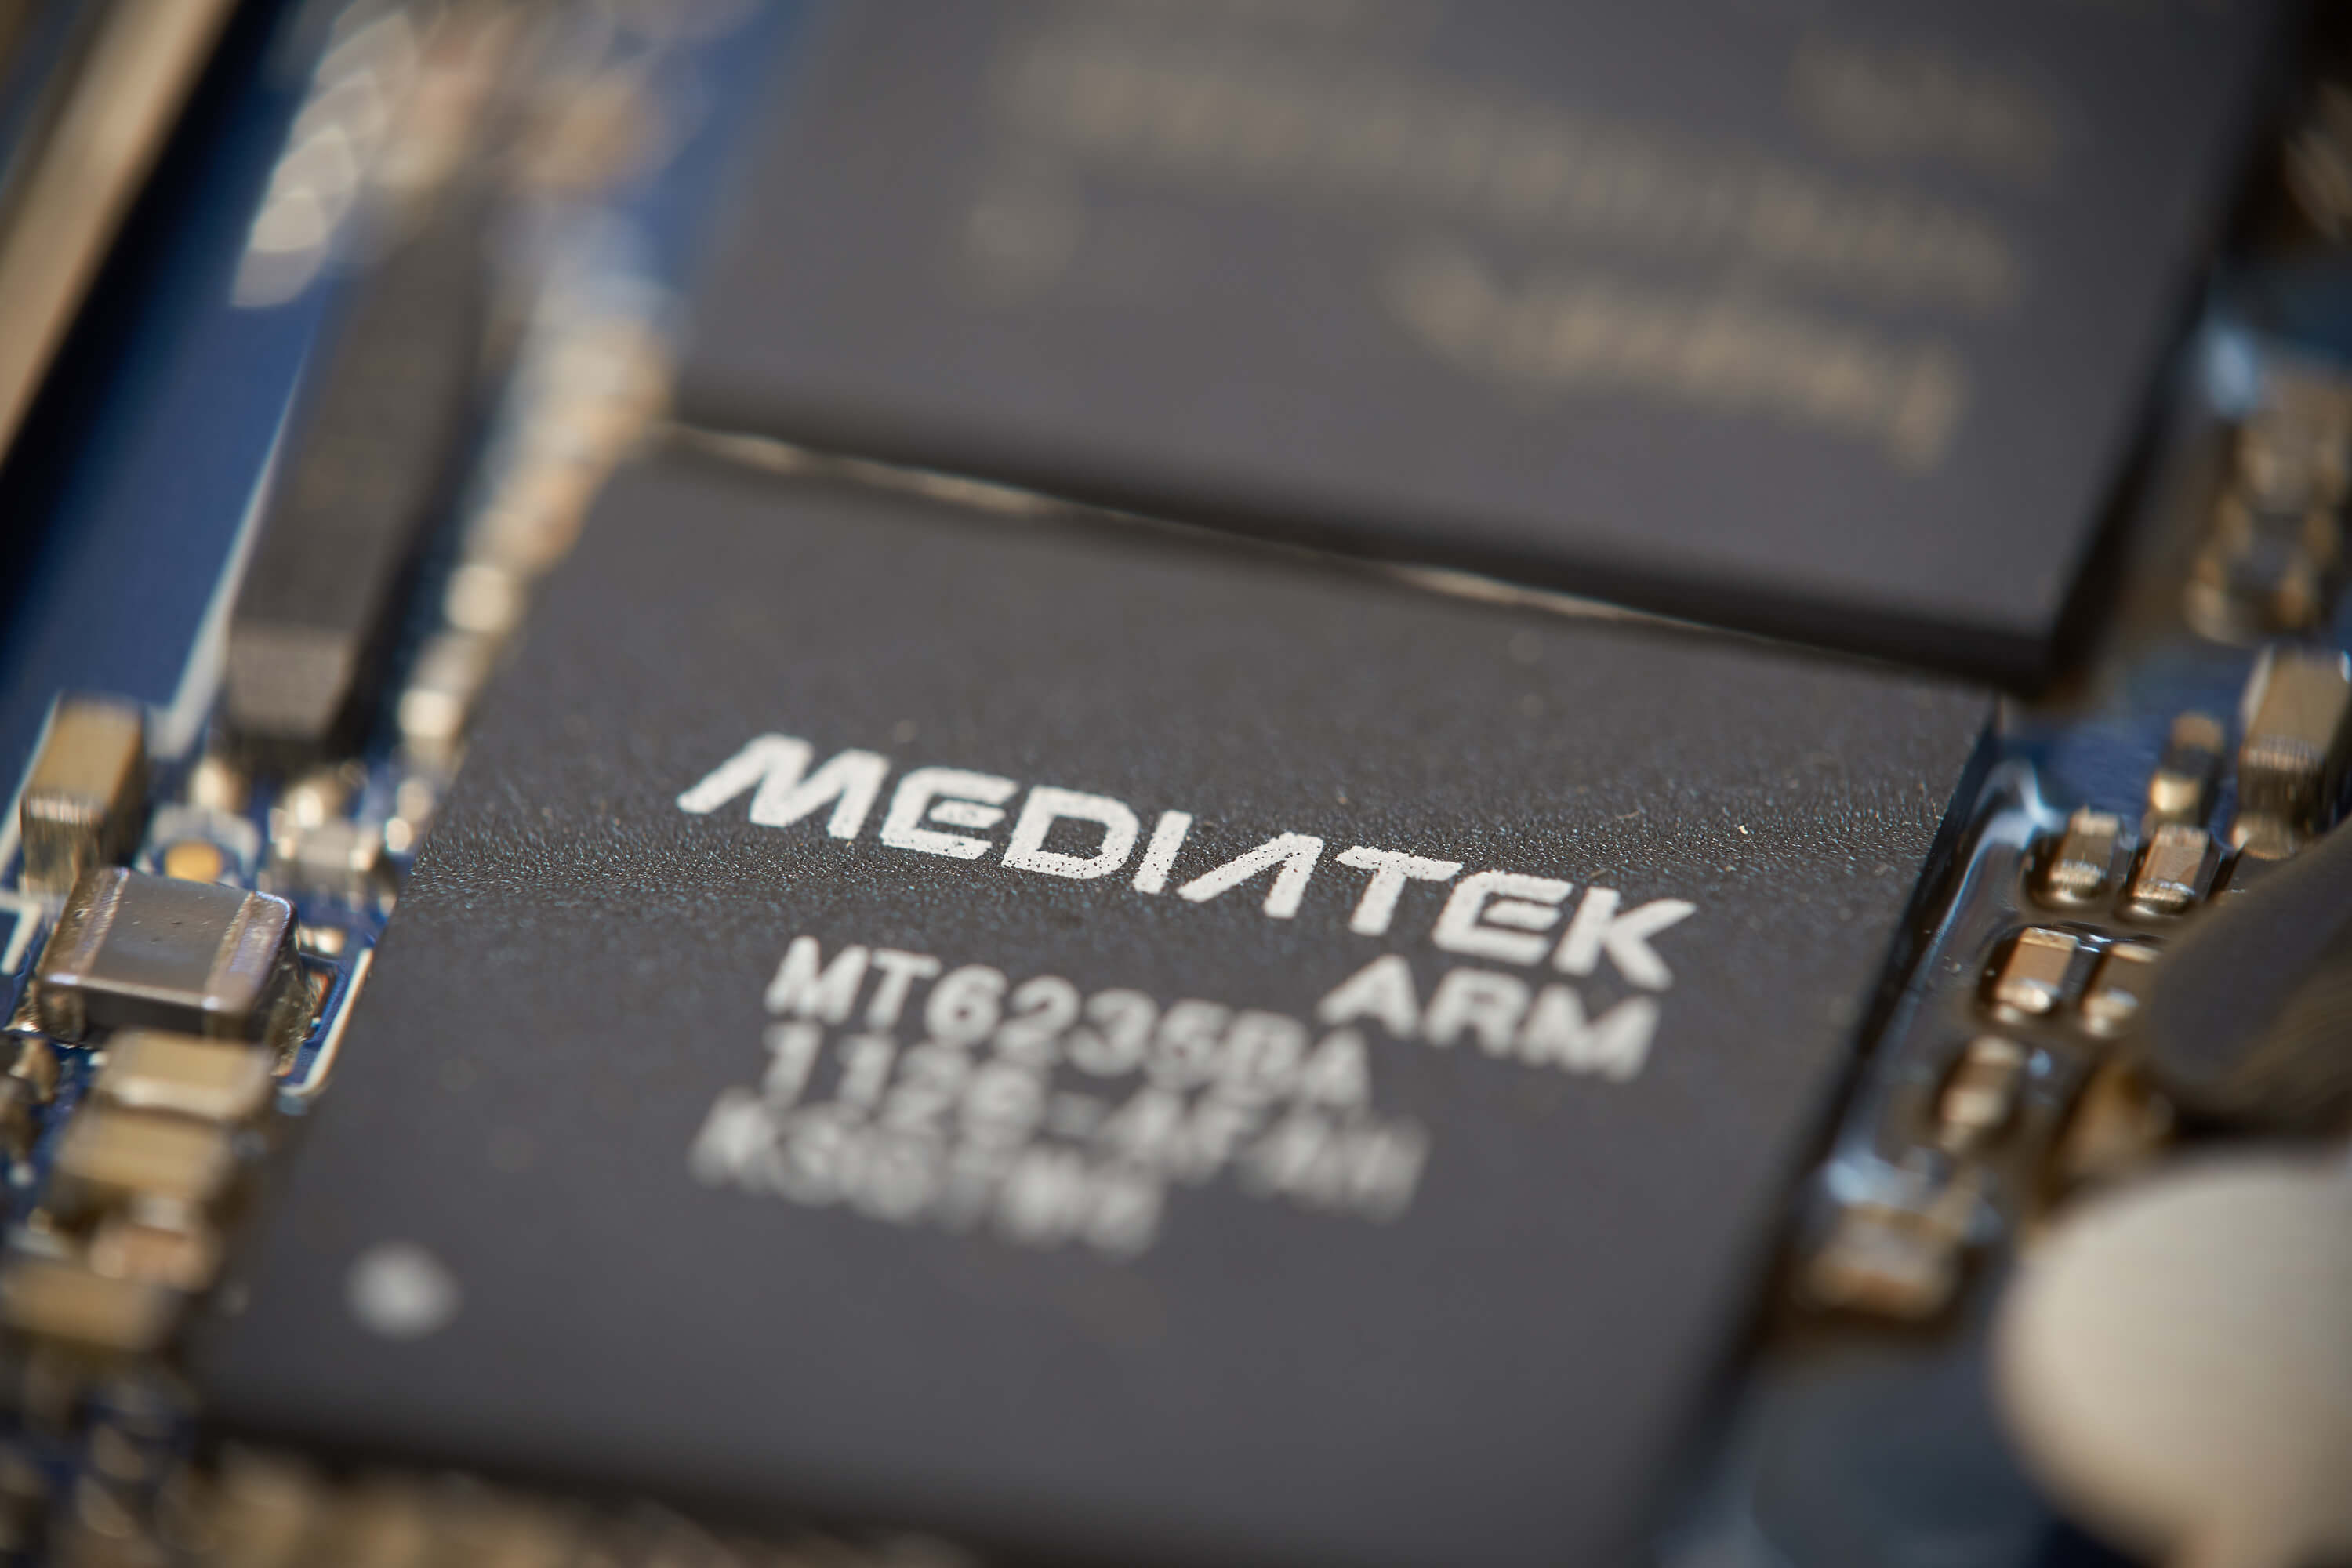 MediaTek becomes world's largest smartphone chipset vendor